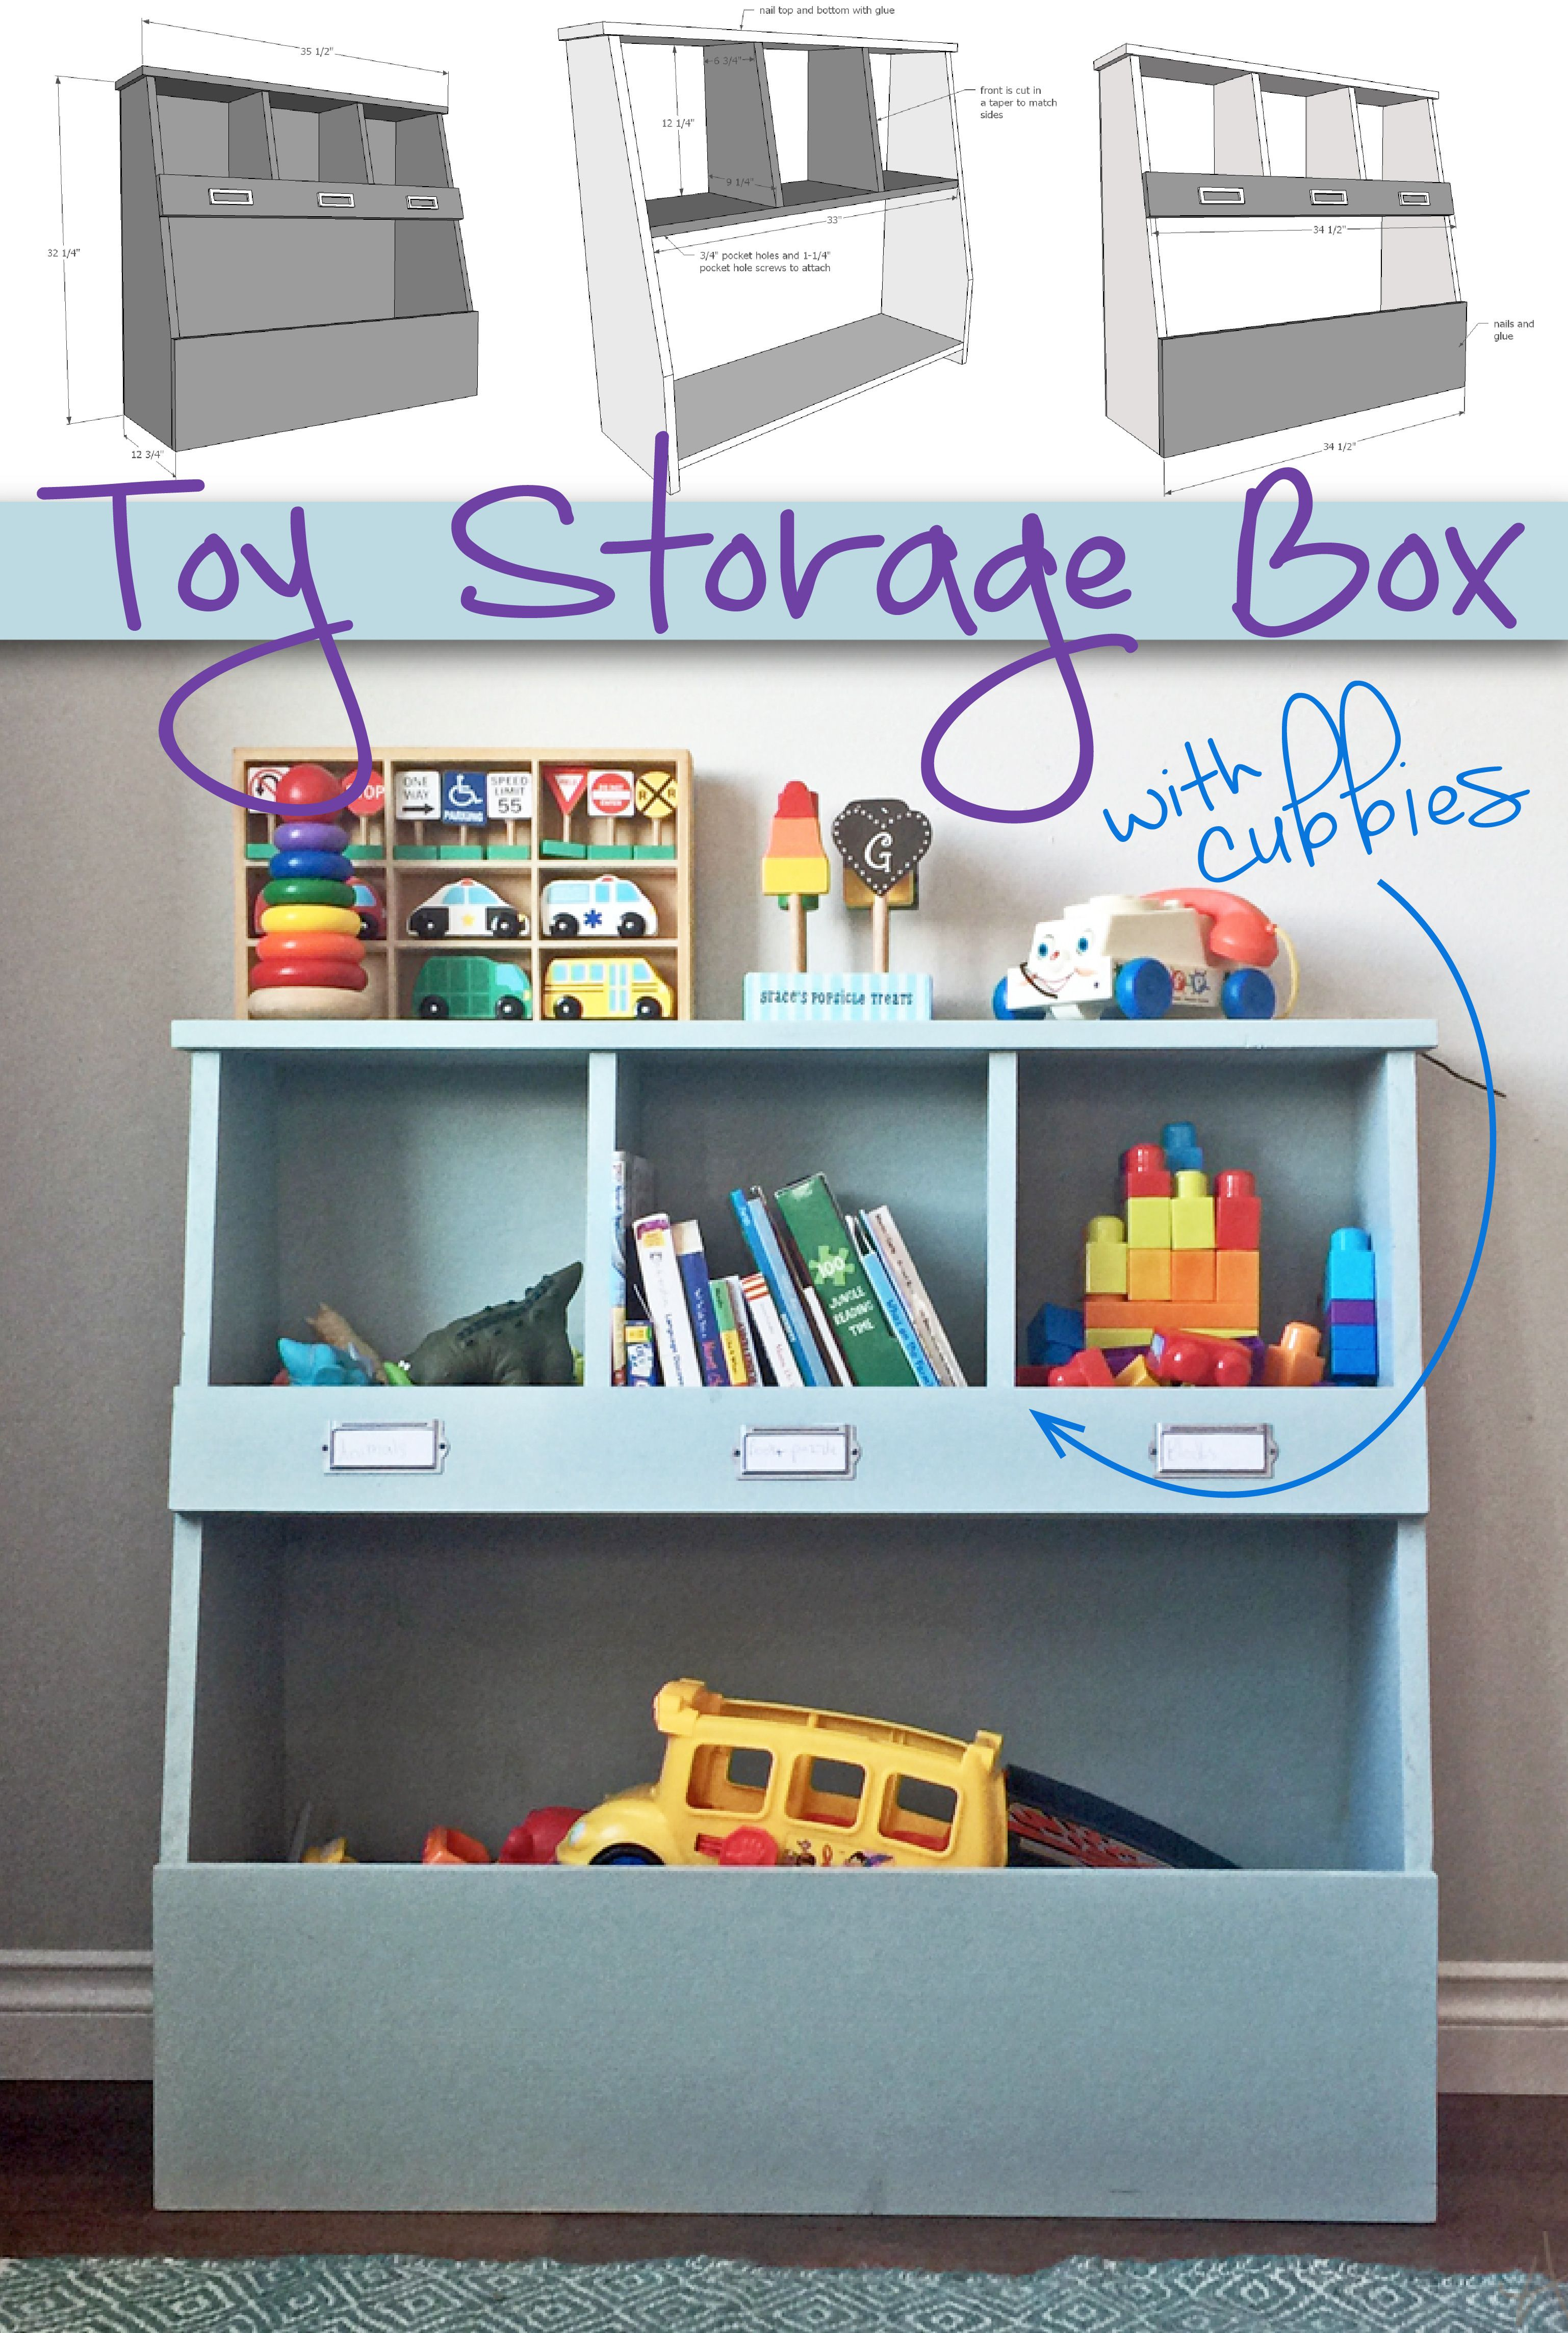 Toy Storage Box With Cubbies Keep Your Home Organized And